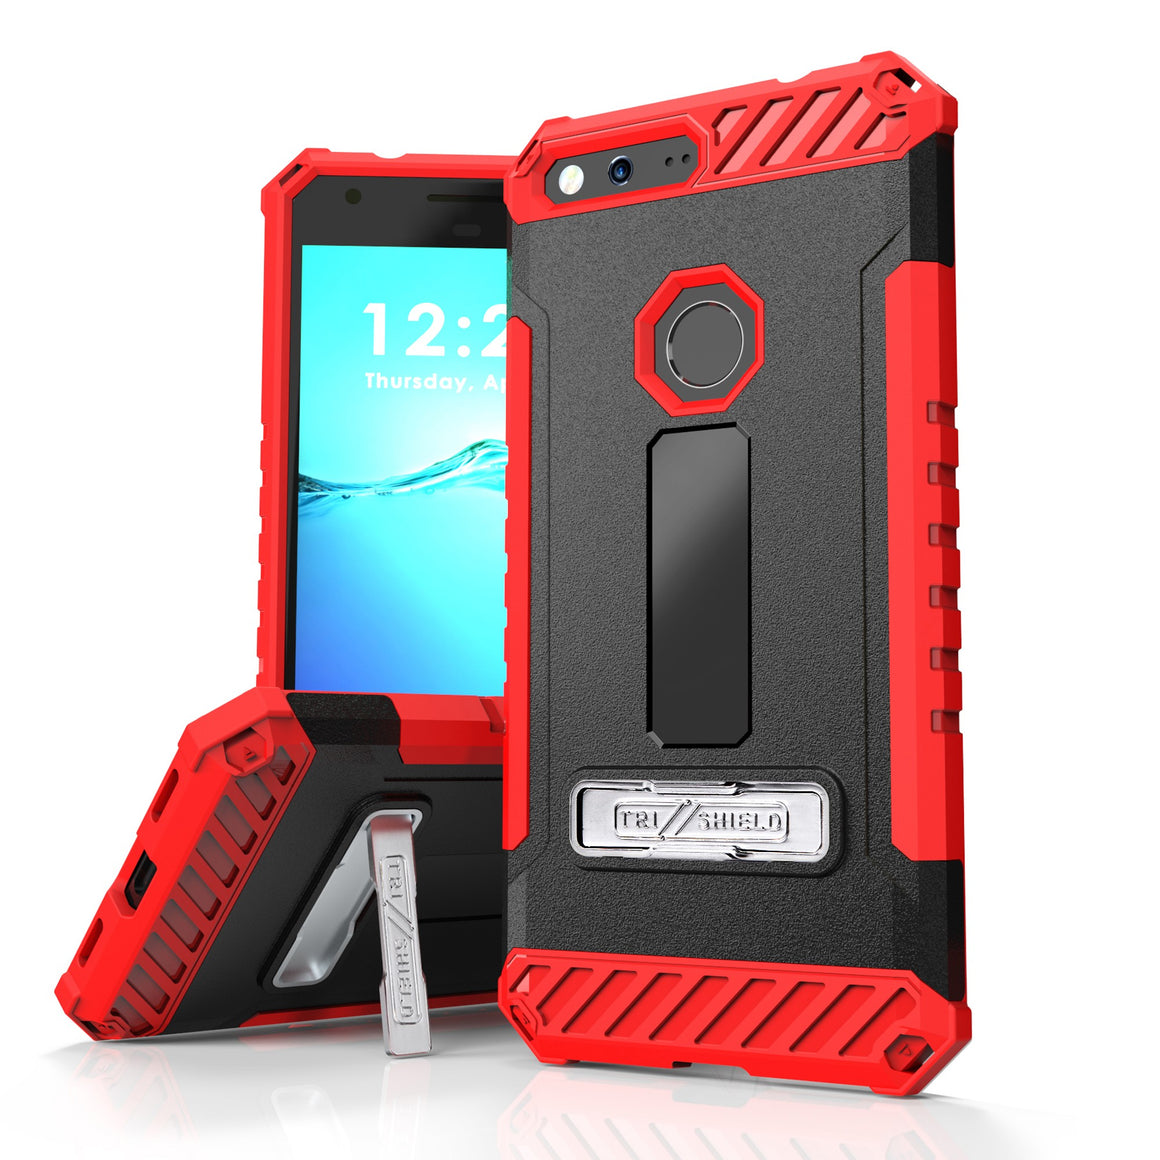 Tri Shield For Google Pixel XL 5.5 (Verizon) Black/Red, TPU Case,Kickstand,